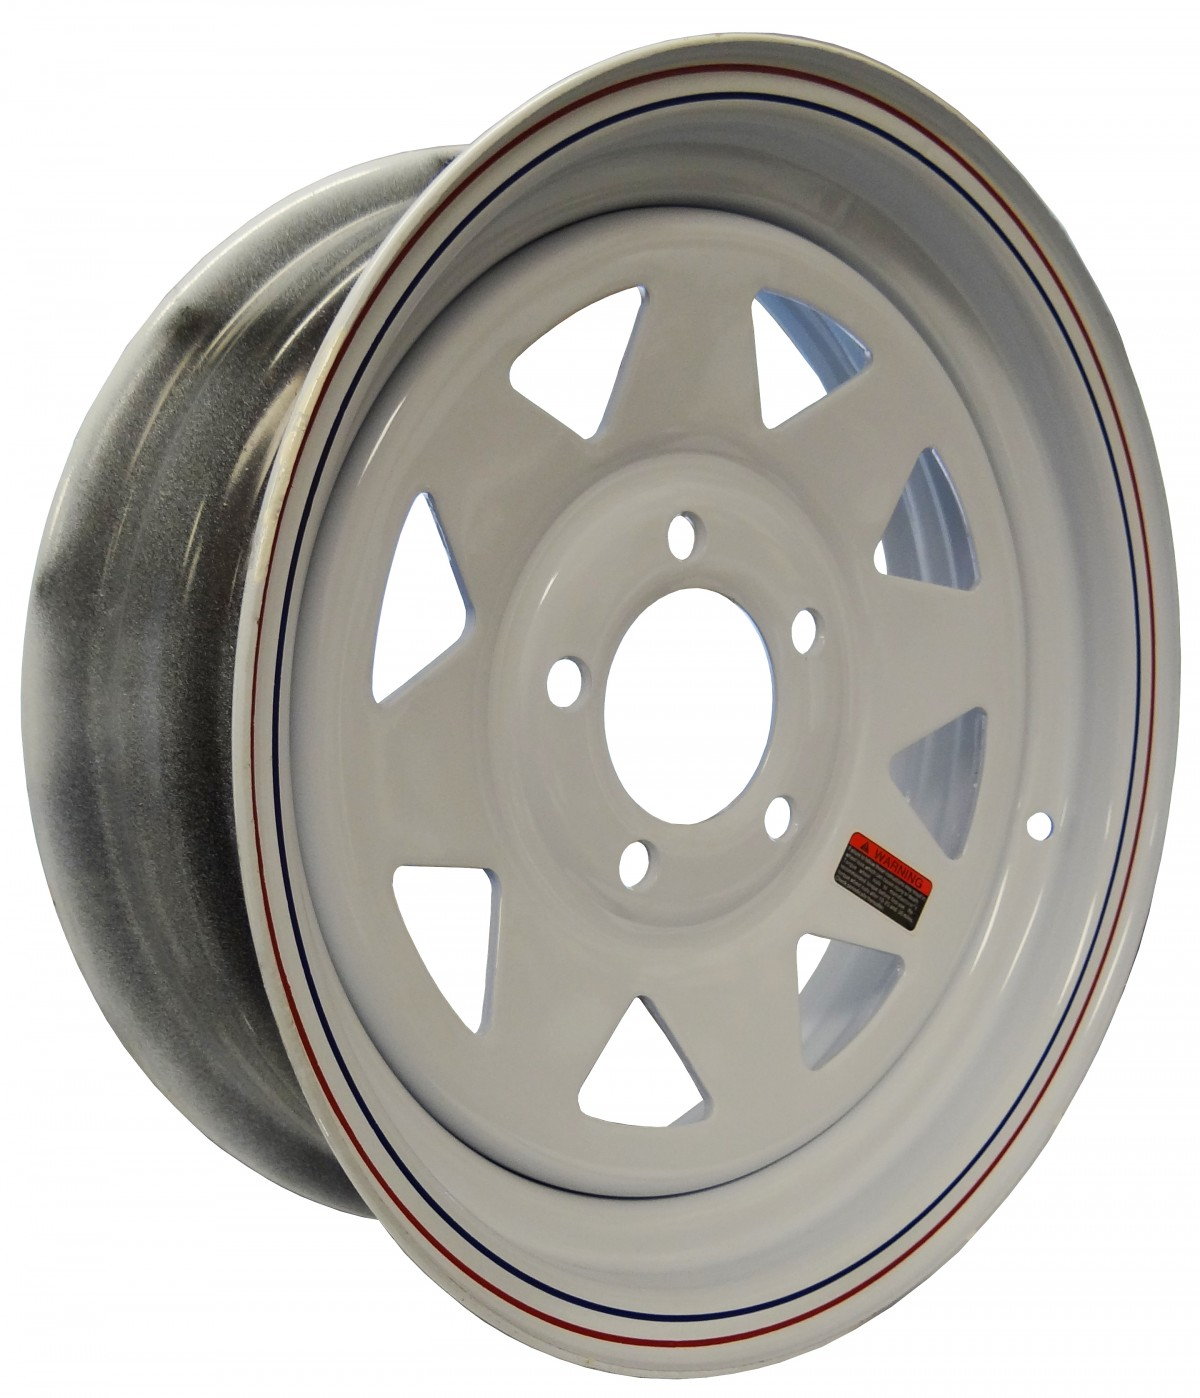 15 U0026quot  X 5 U0026quot  Wide Painted Trailer Rim With 5 Lugs On 4 3  4